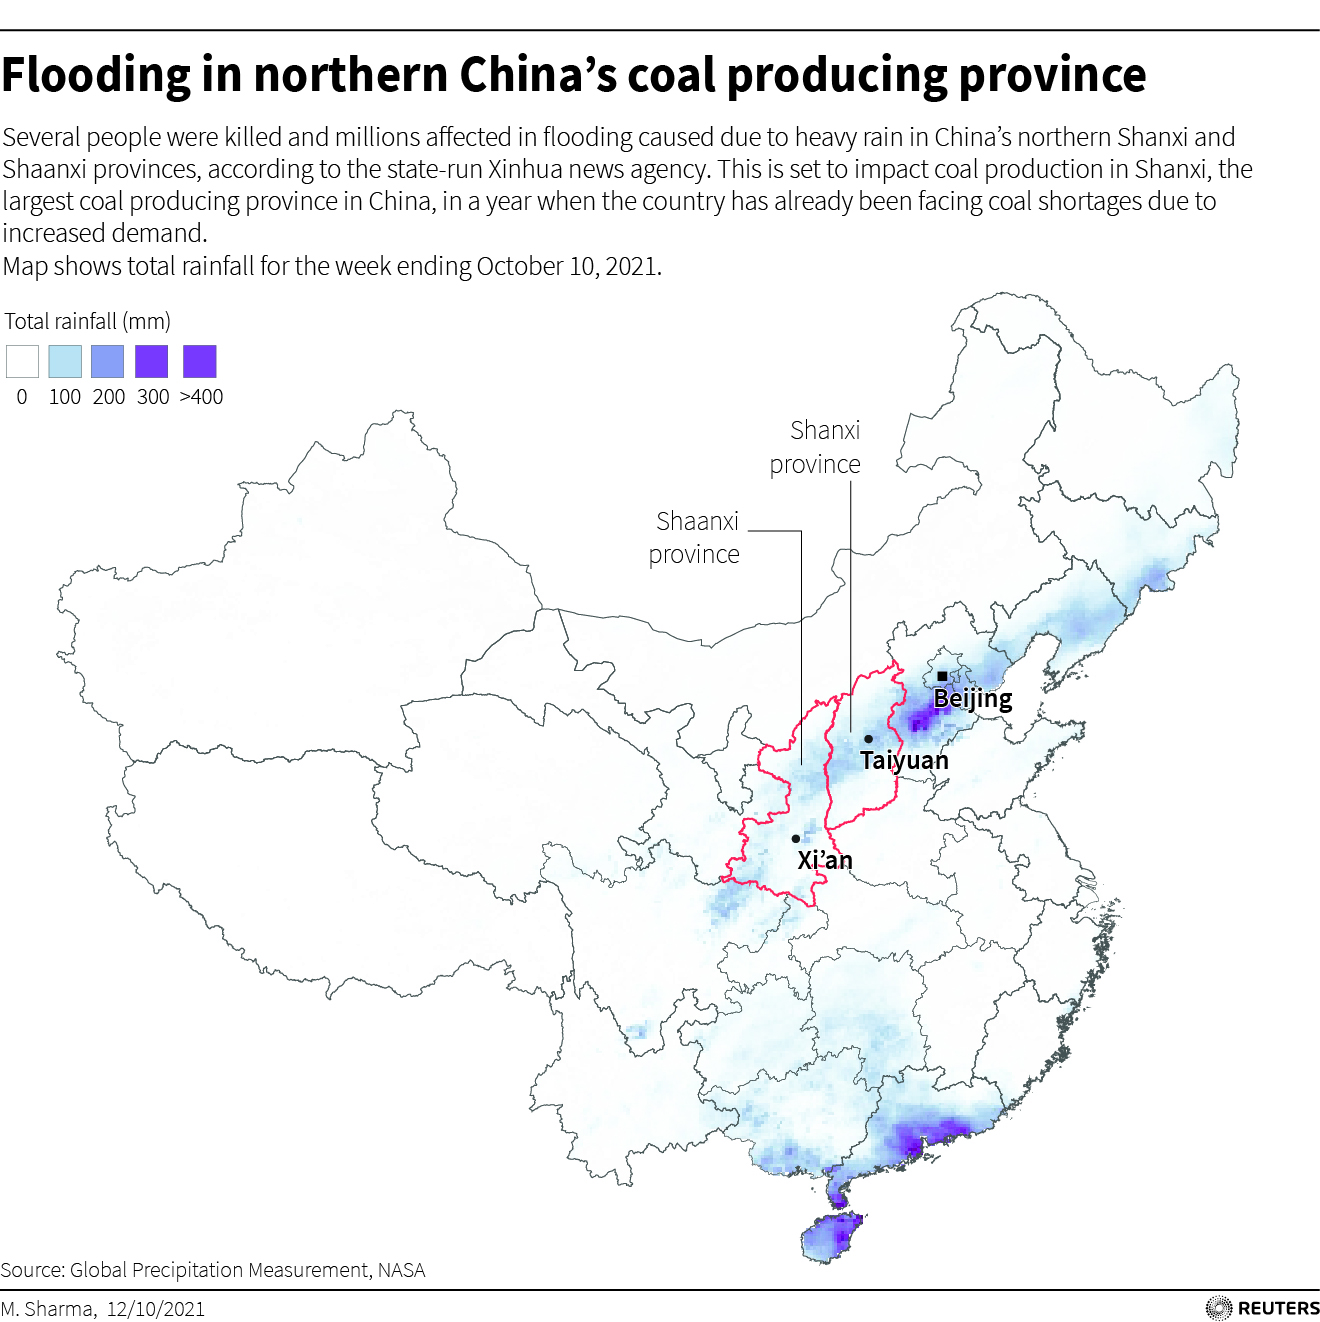 Several people were killed and millions affected in flooding caused due to heavy rain China's northern Shanxi and Shaanxi provinces, according to the state-run Xinhua news agency.